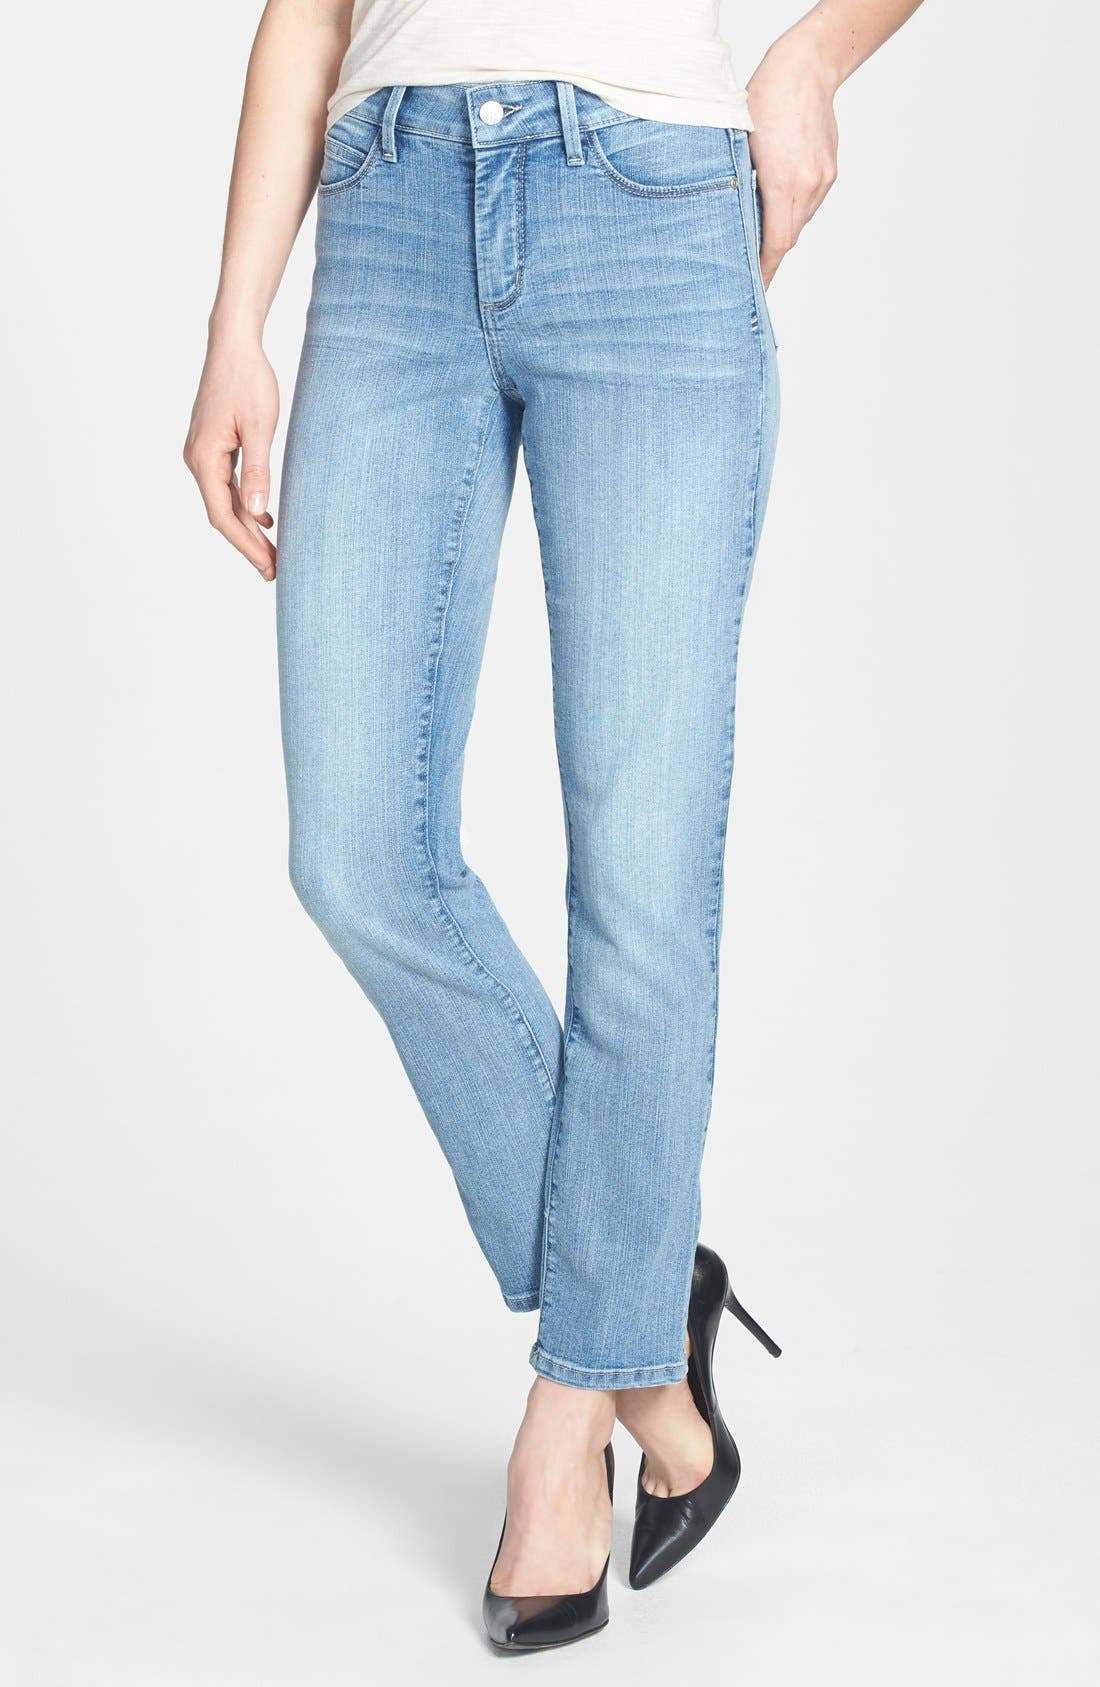 Alternate Image 1 Selected - NYDJ 'Bobbie' Stretch Boyfriend Jeans (Aruba) (Regular & Petite)